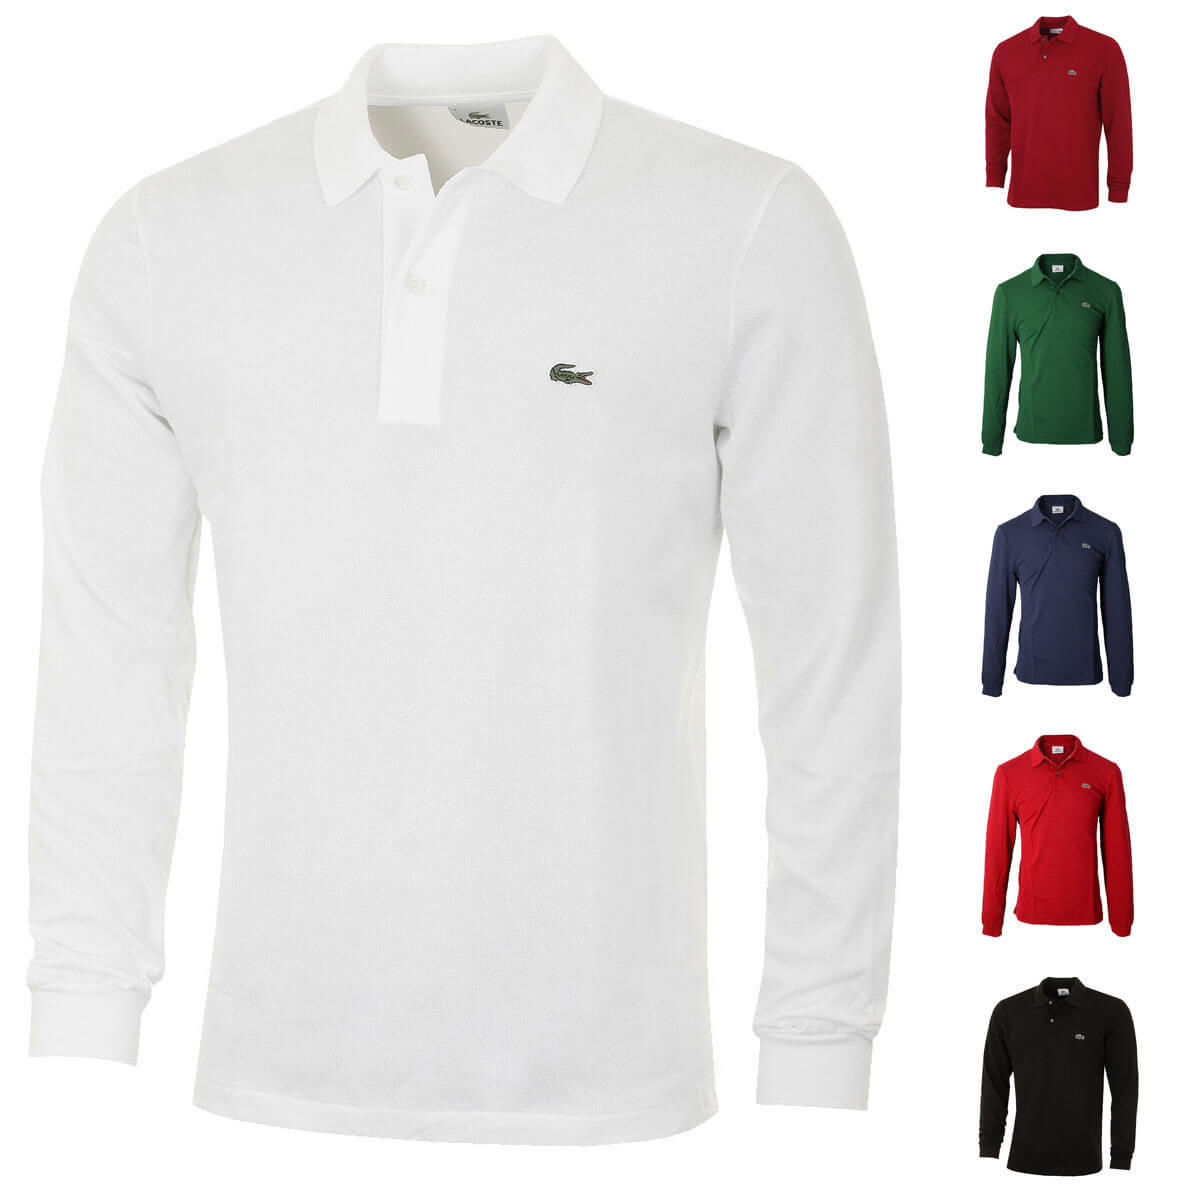 9744f02bcd4d SHARE THIS ITEM WITH YOUR FRIENDS. Watch video Size Guide. Description   Technology  Reviews0. Description. The Lacoste classic polo shirt ...